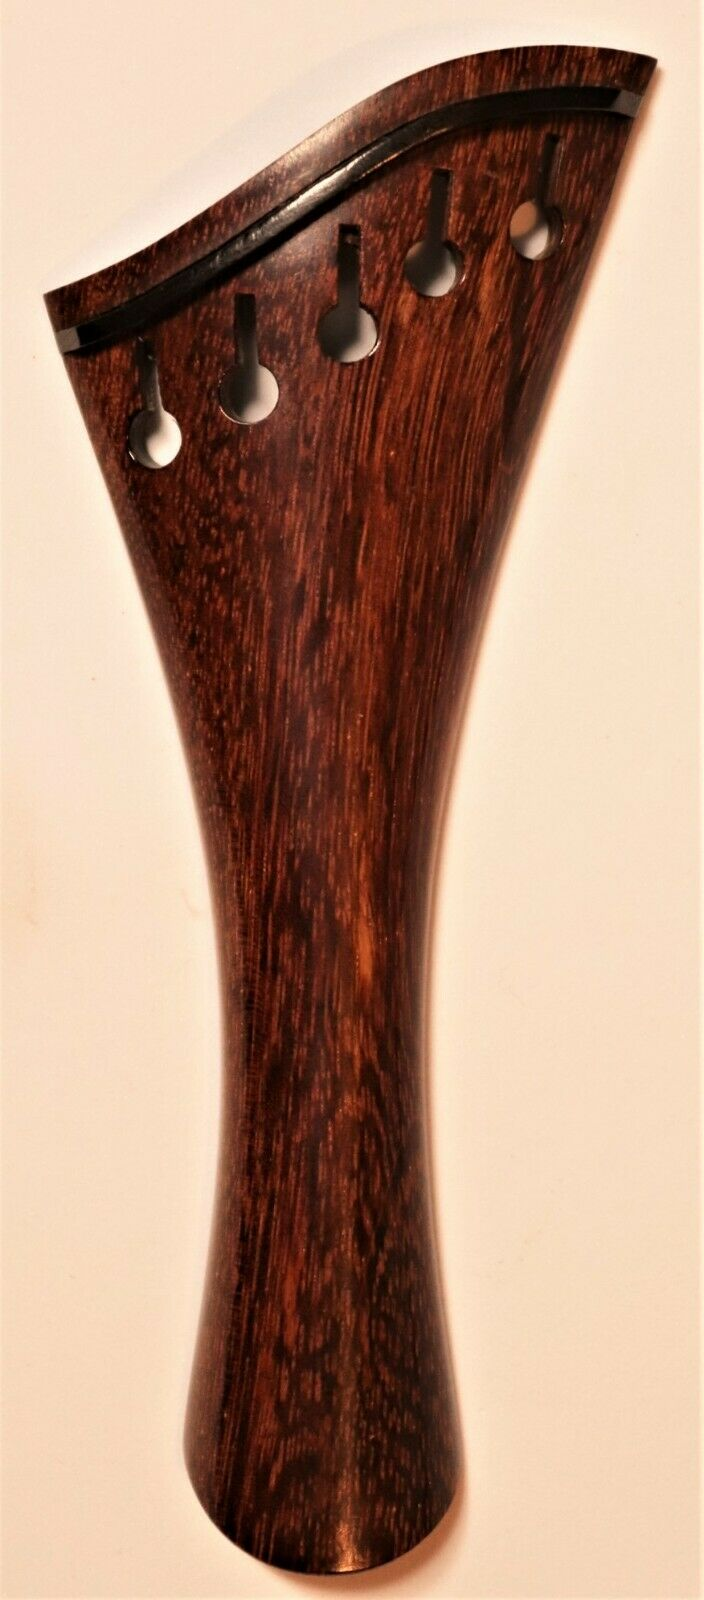 Violin 5 String Hollow Harp Tailpiece 4/4 Tamarind Wood French Model Item 1 - $28.50